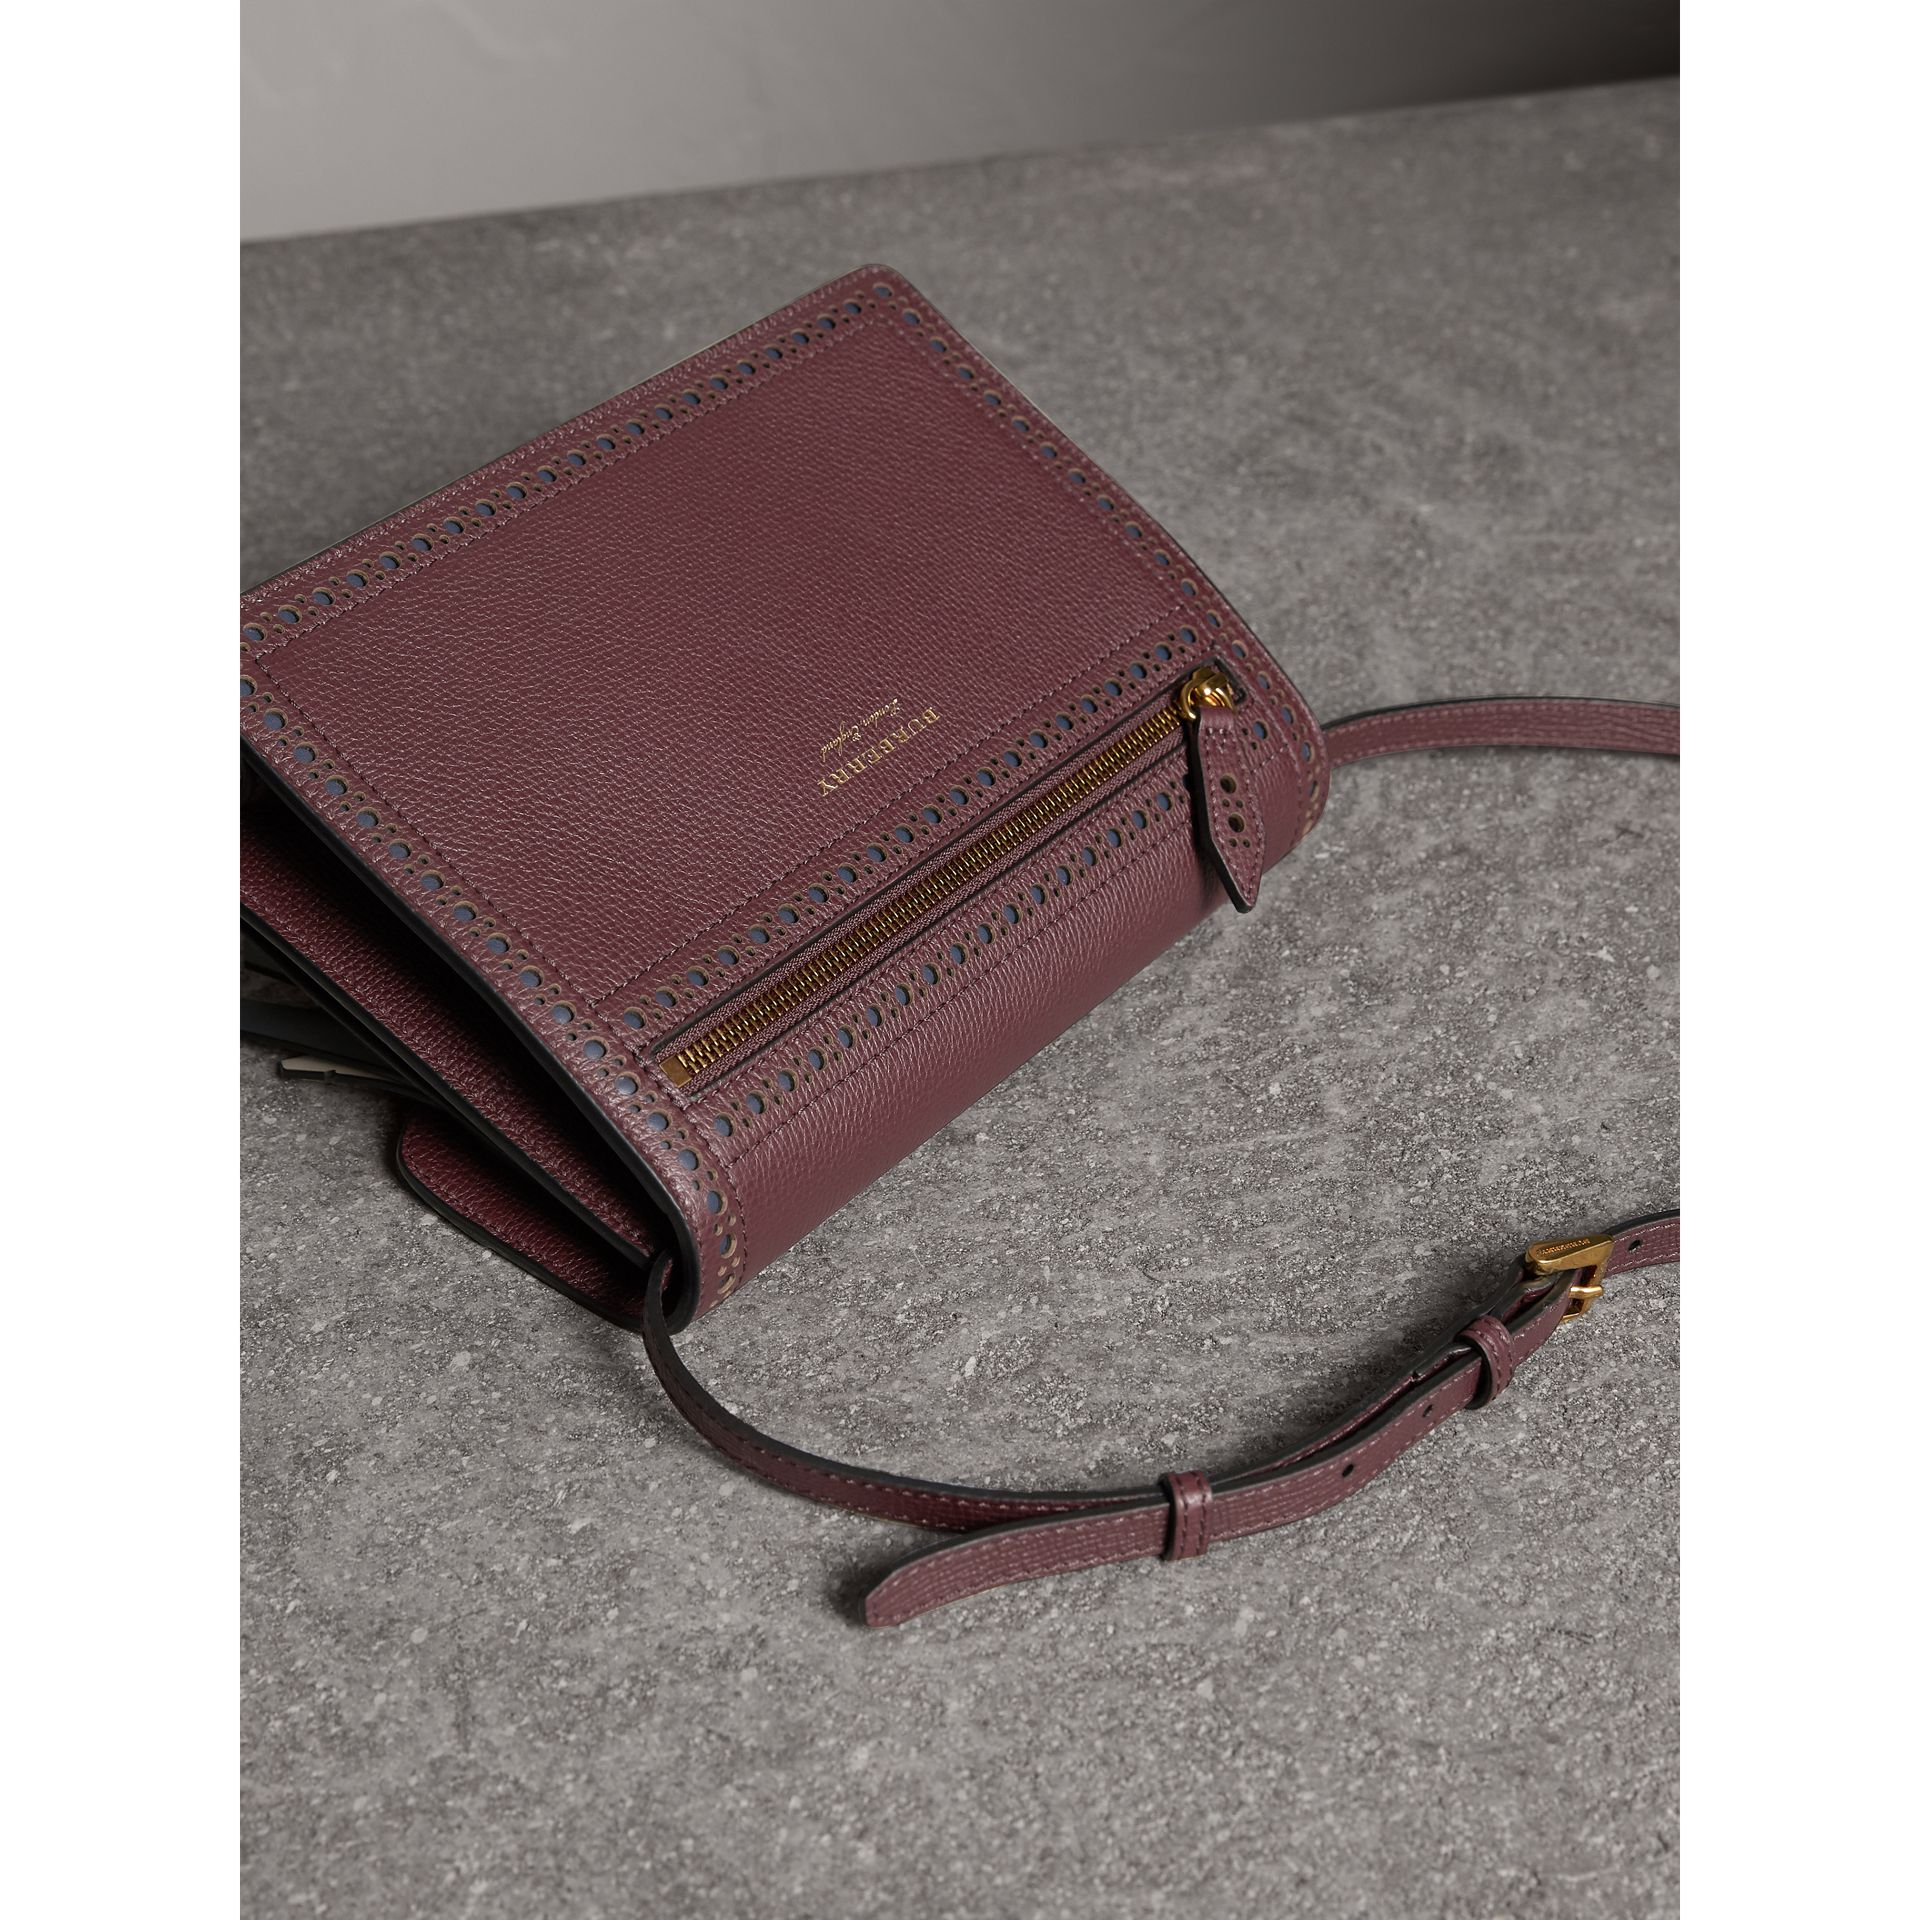 Brogue and Fringe Detail Leather Crossbody Bag in Mahogany Red - Women | Burberry - gallery image 4